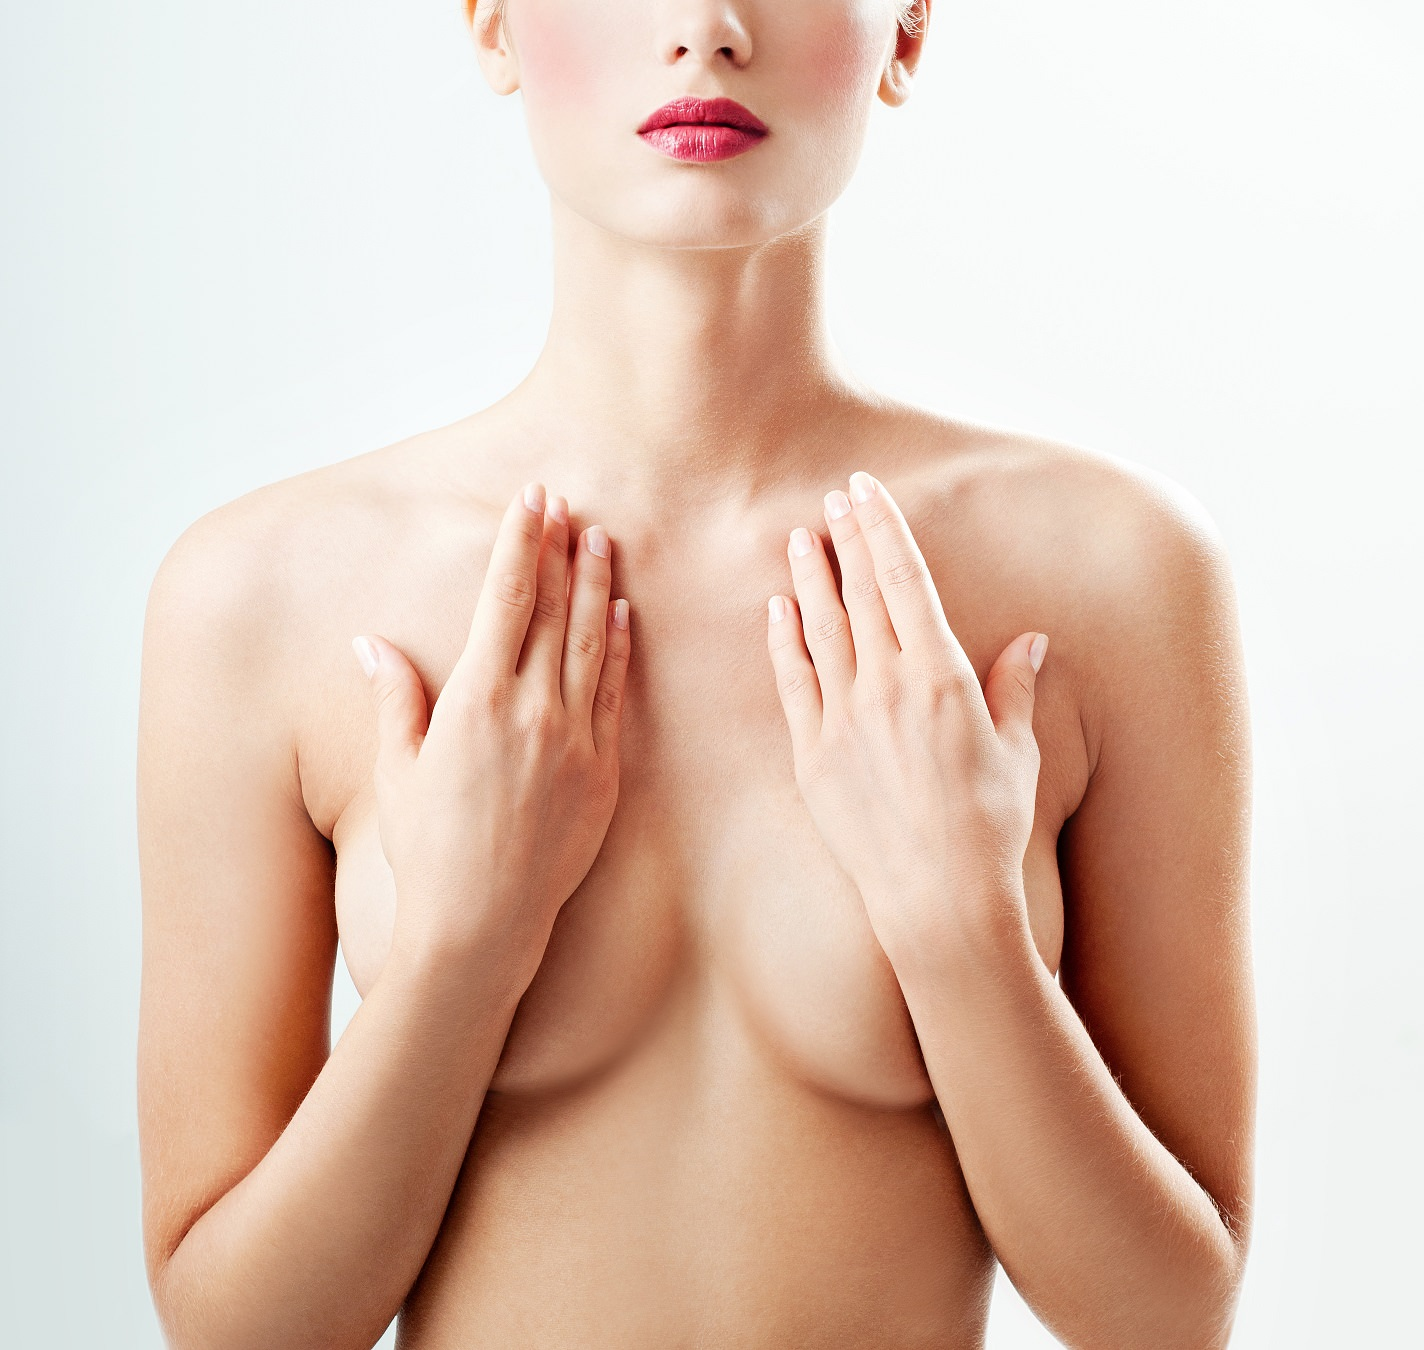 Removing Breast Implants